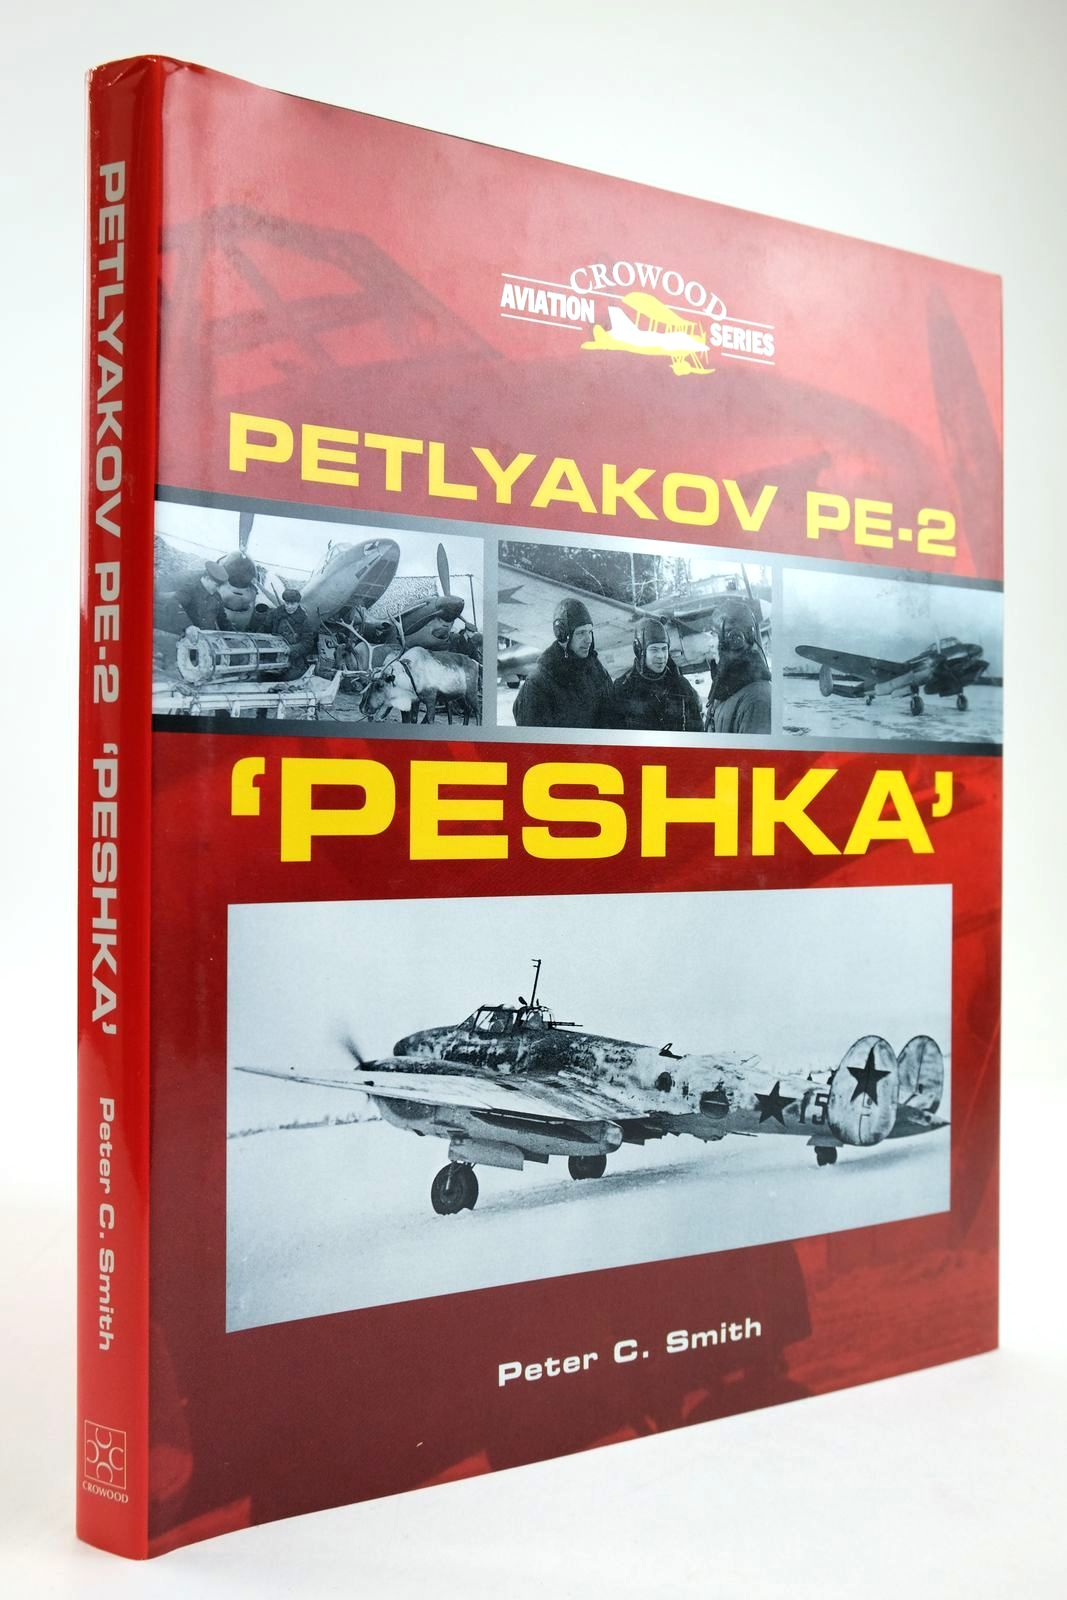 Photo of PETLYAKOV PE-2 'PESHKA' written by Smith, Peter C. published by The Crowood Press (STOCK CODE: 2133882)  for sale by Stella & Rose's Books